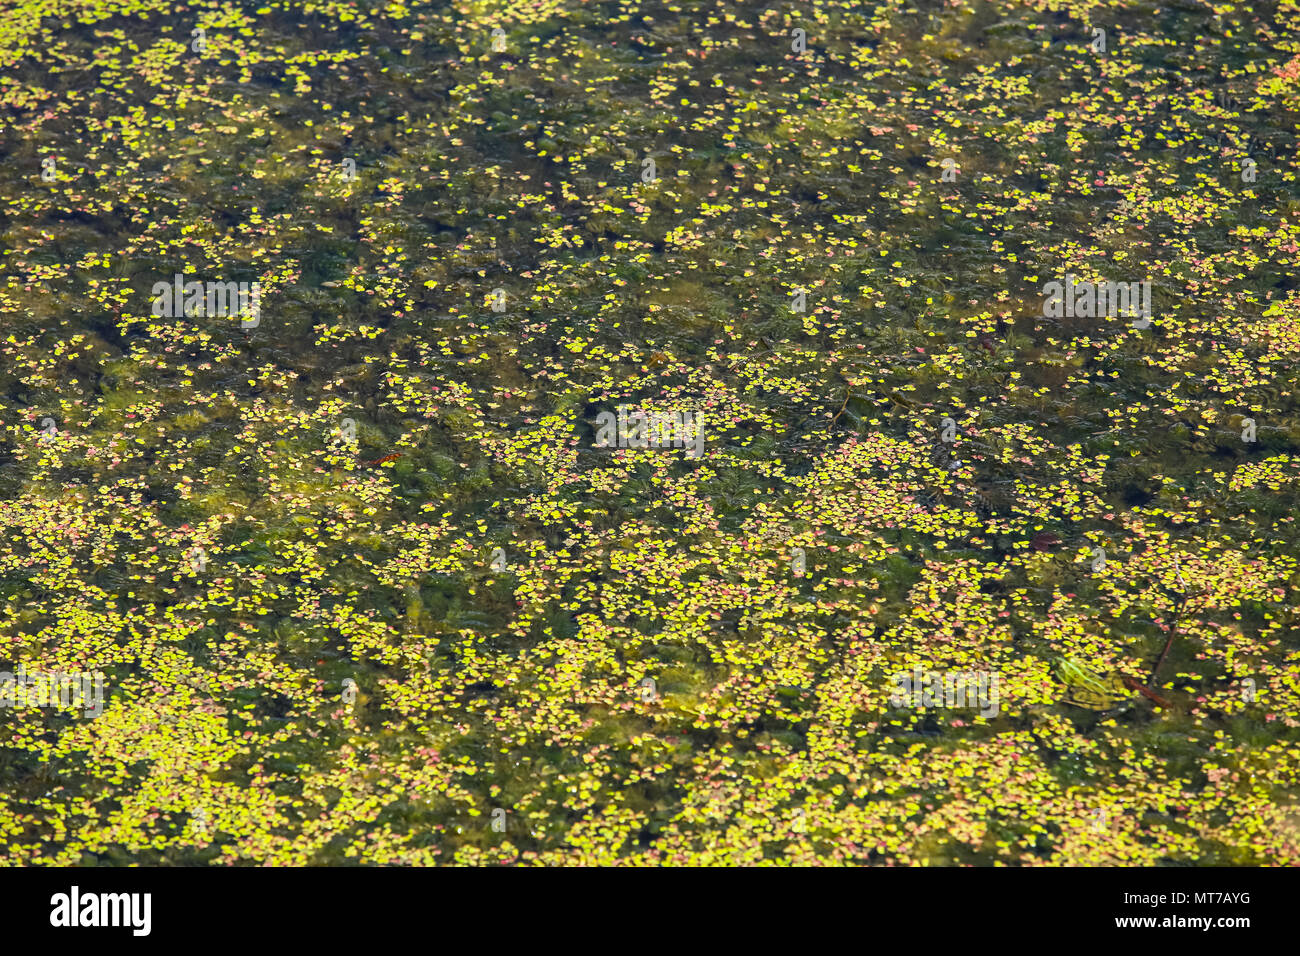 Close up of Bosut river surface covered with algal blooms in Vinkovci, Croatia. - Stock Image